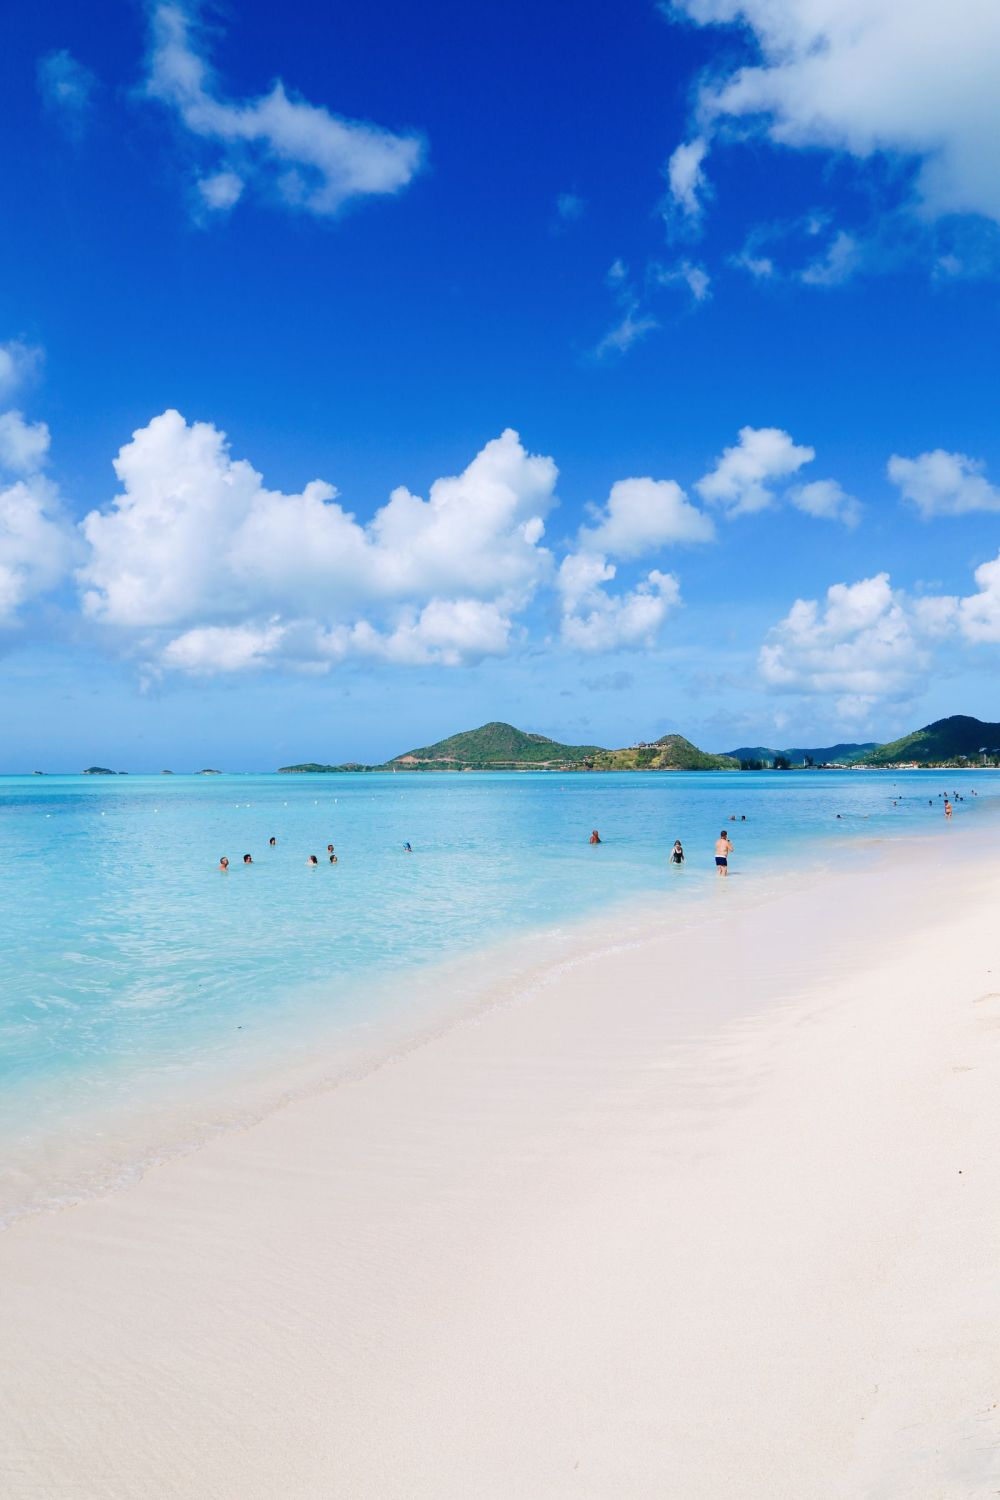 Exploring The Caribbean Island Of Antigua By Land - Part 2 (43)